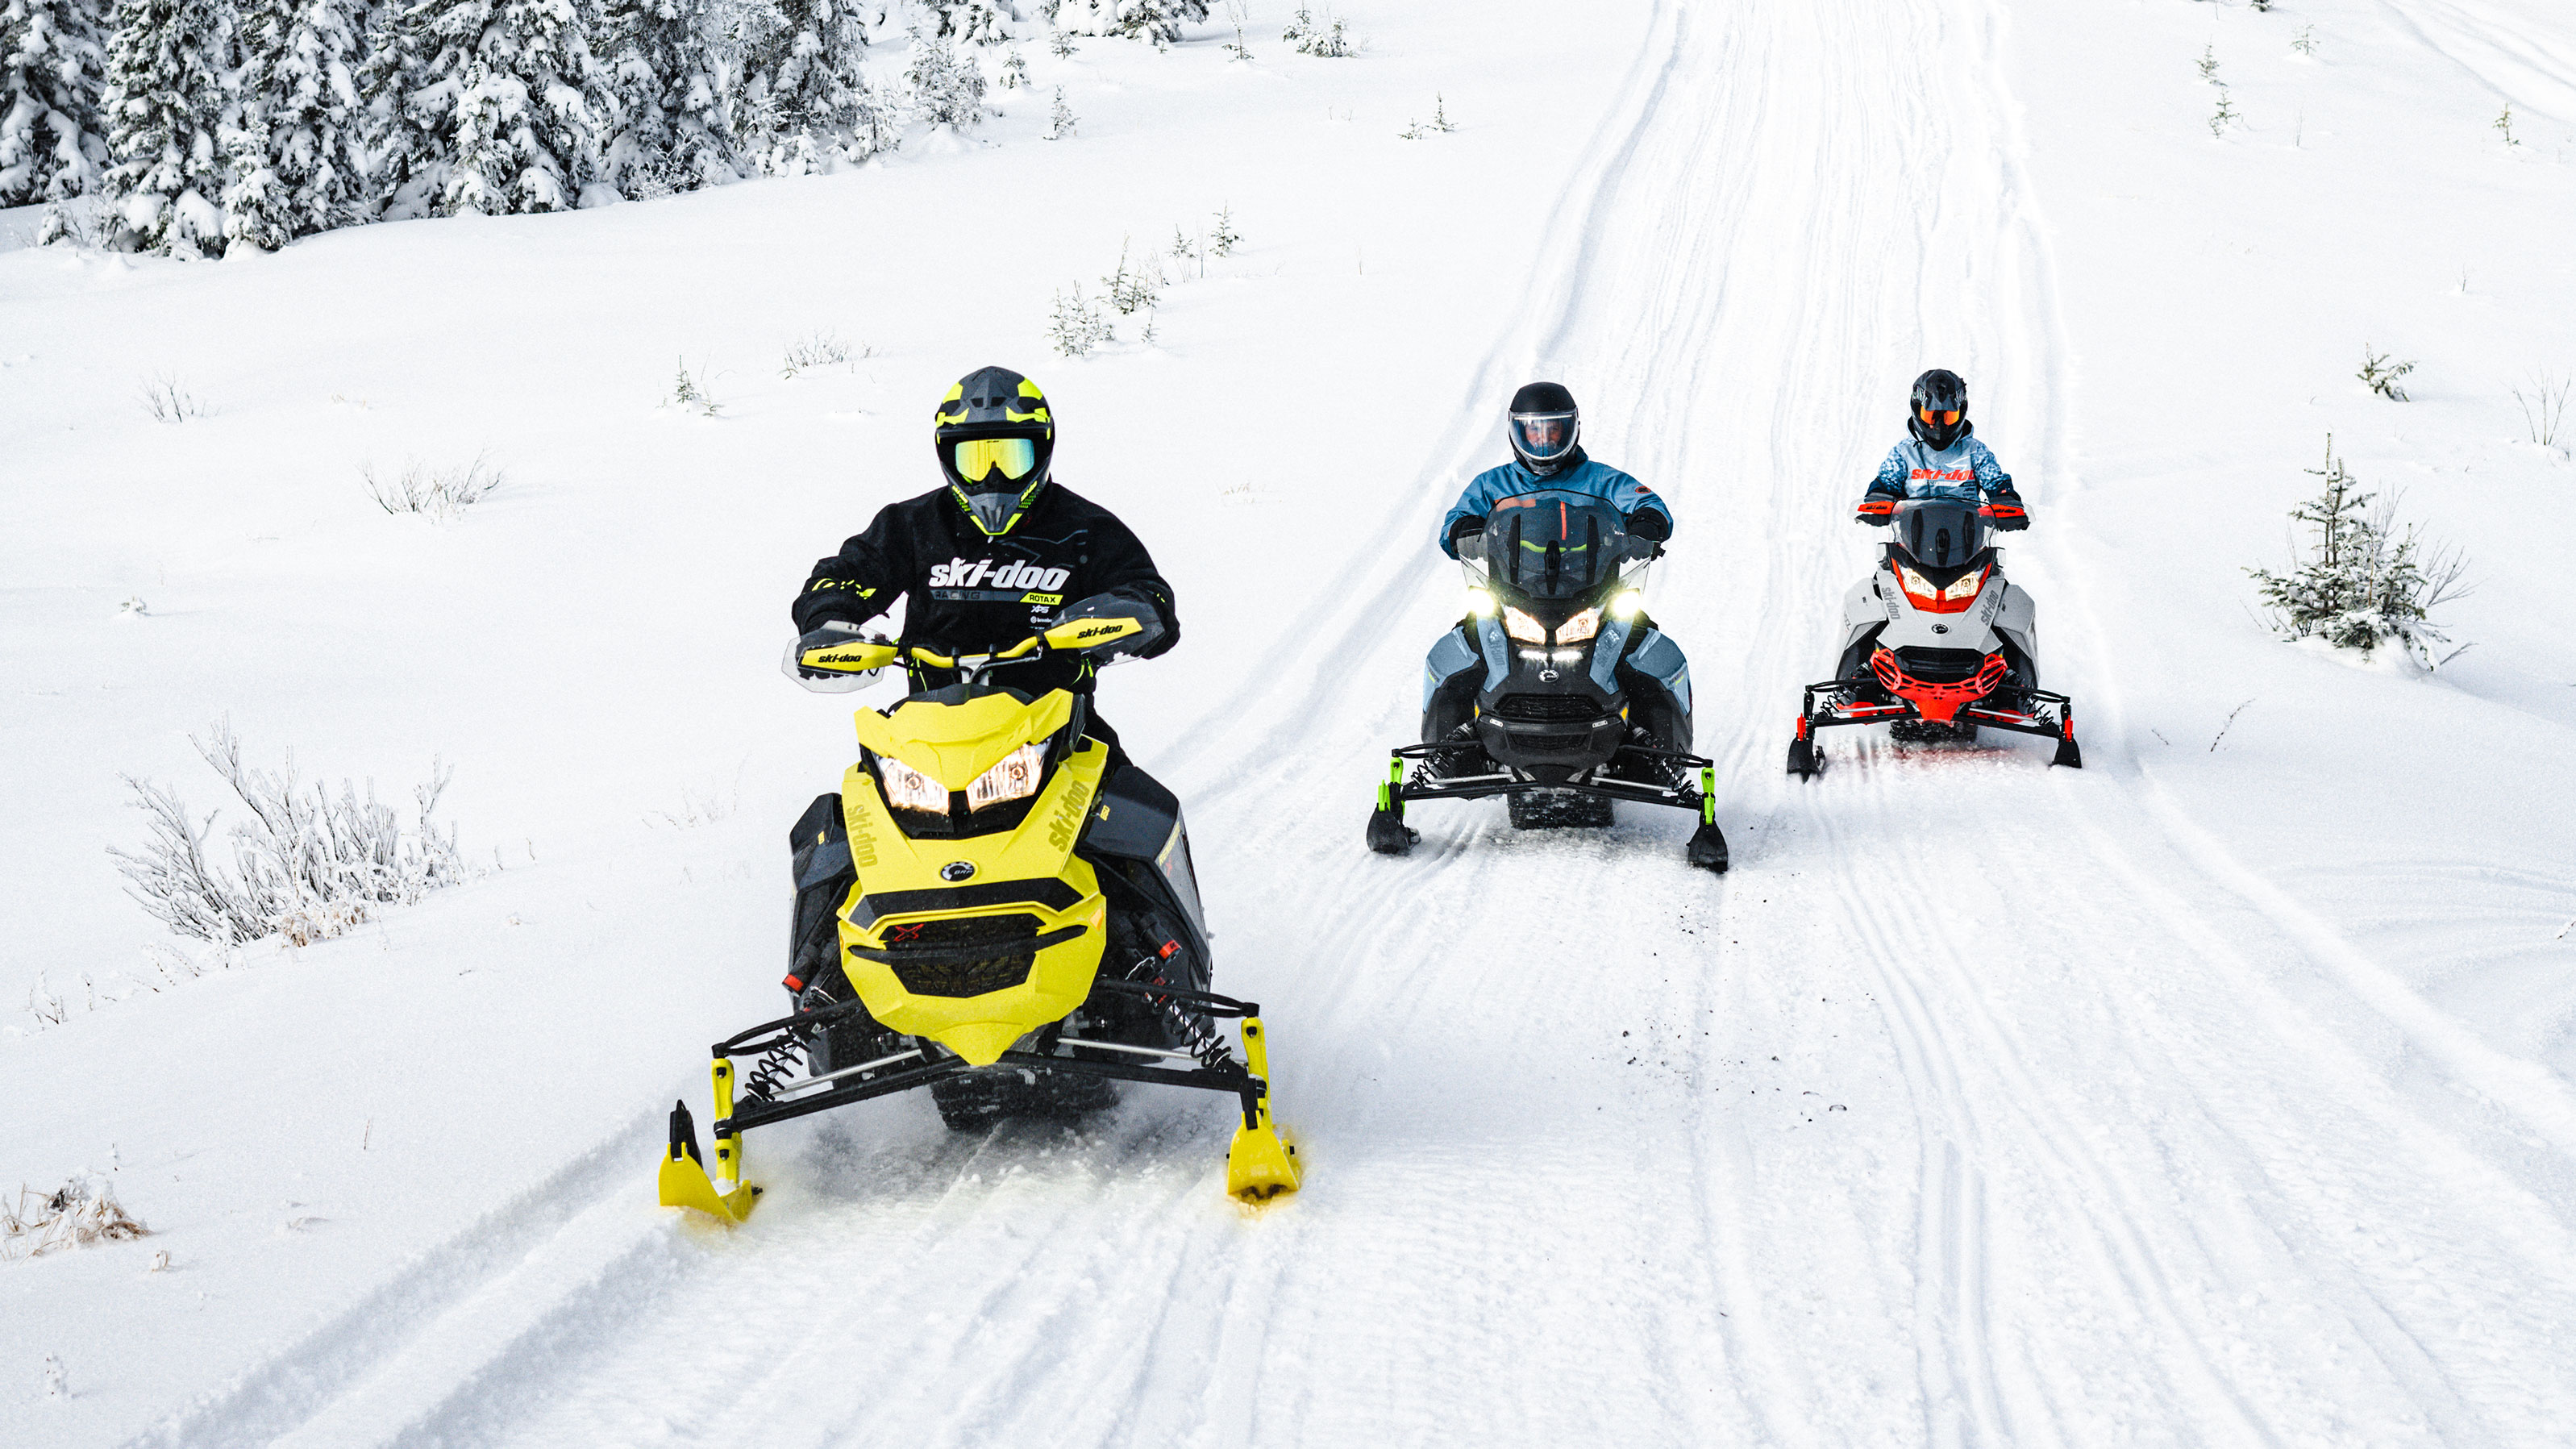 3 riders snowmobiling on a snow trail with their 2022 SKi-Doo